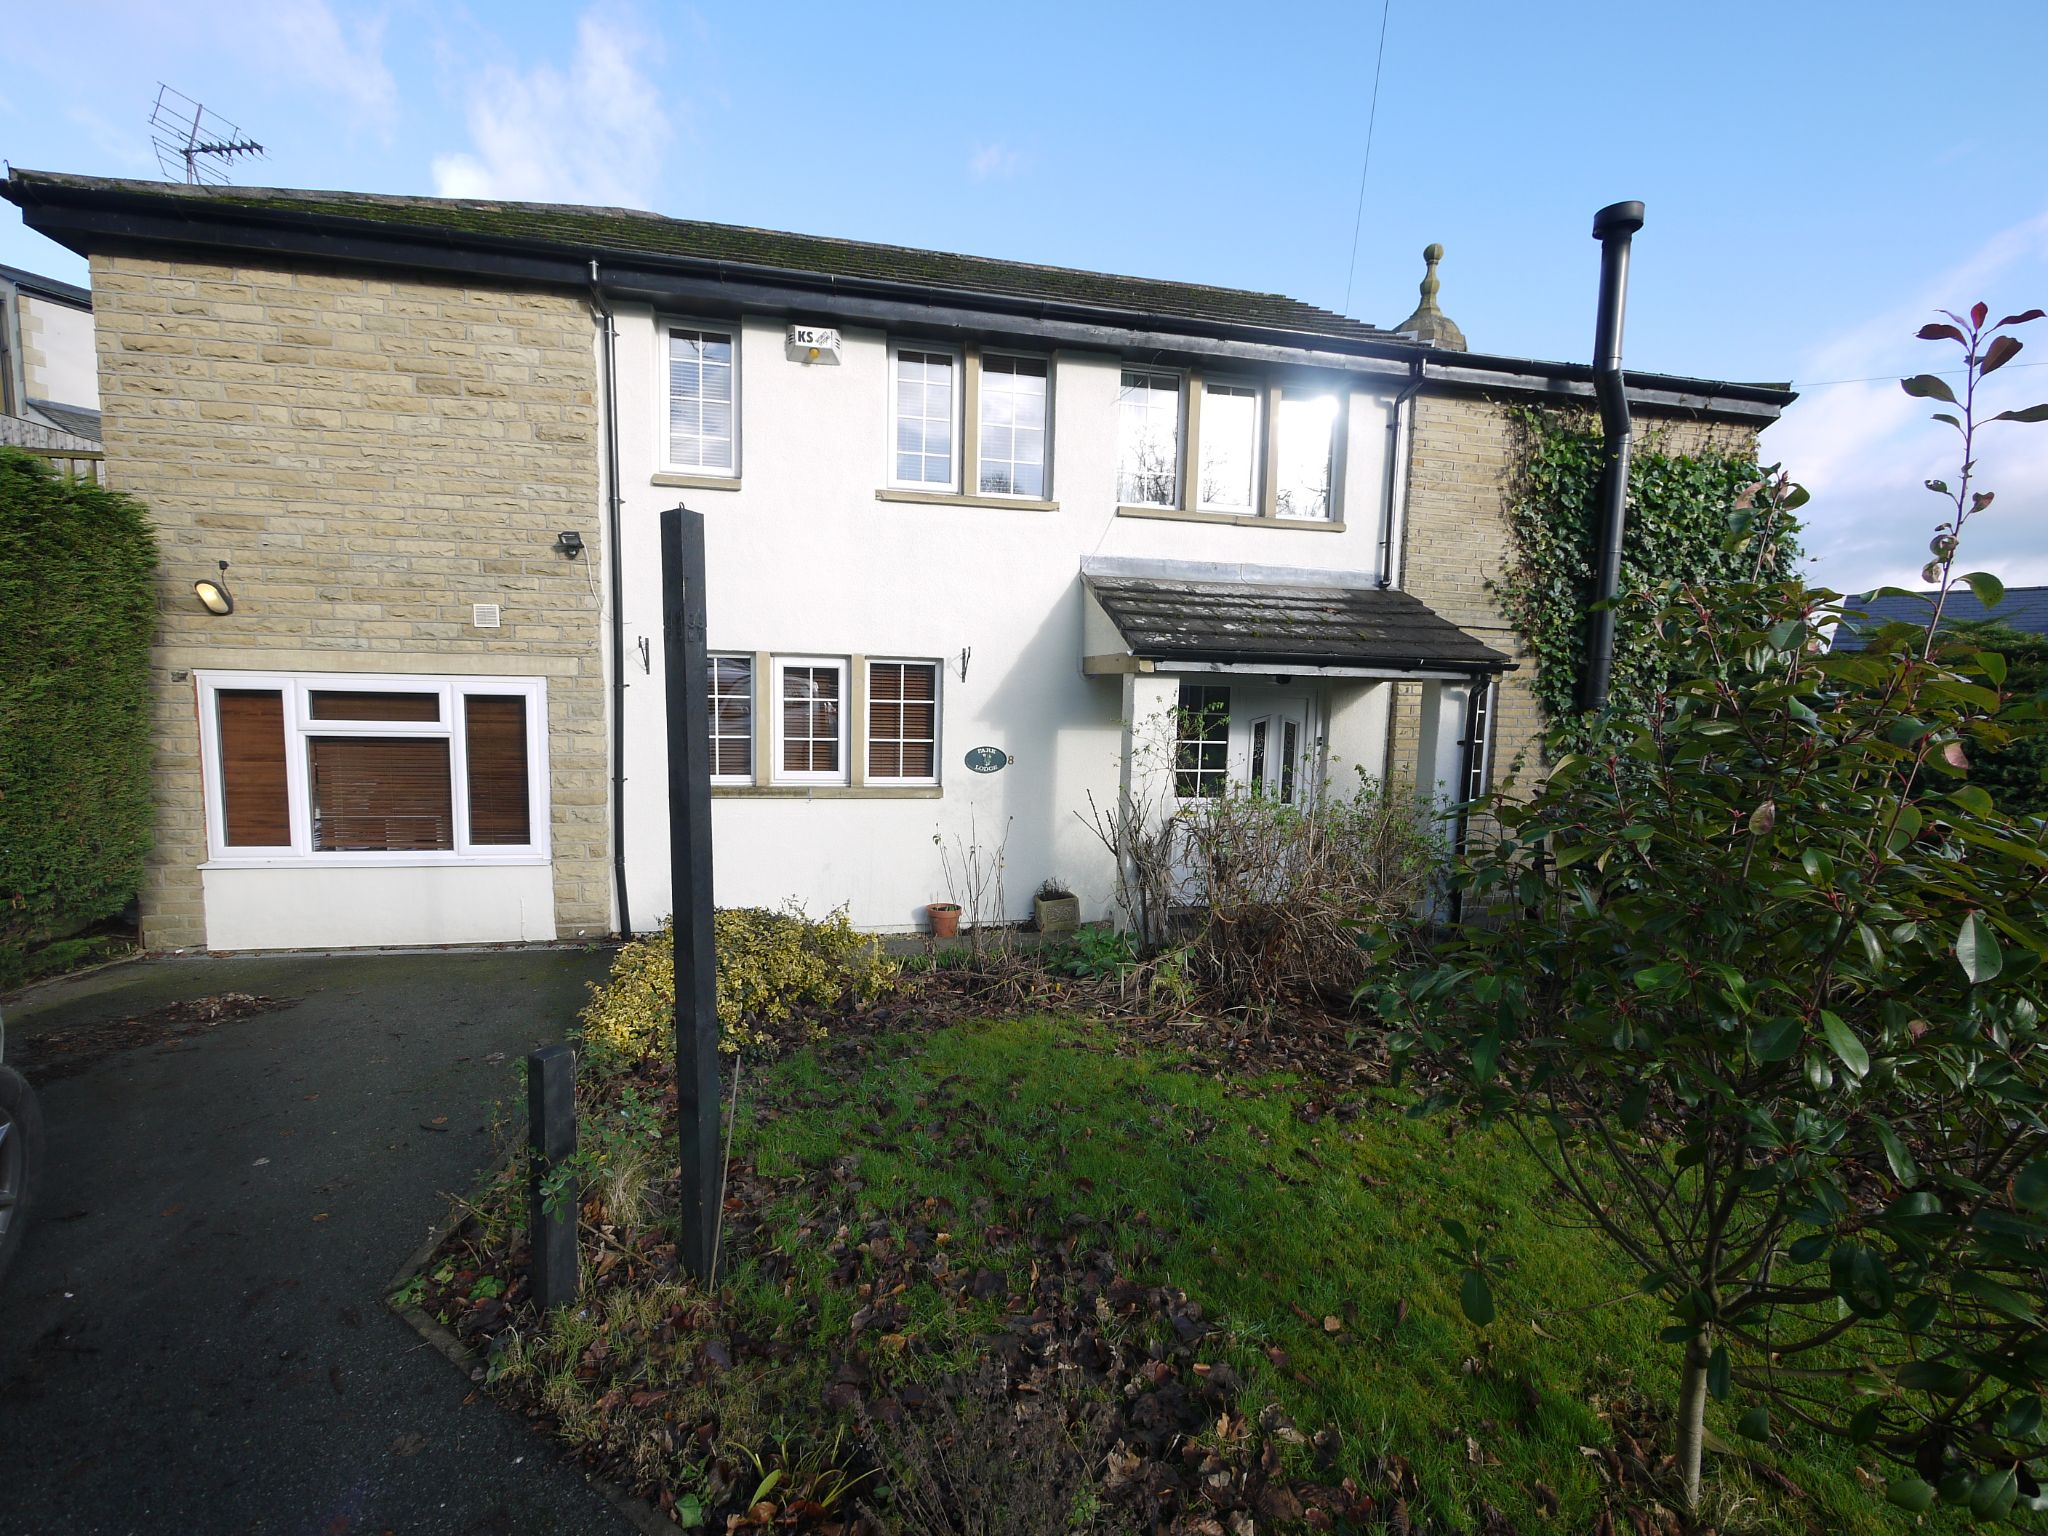 4 bedroom detached house SSTC in Brighouse - Photograph 1.